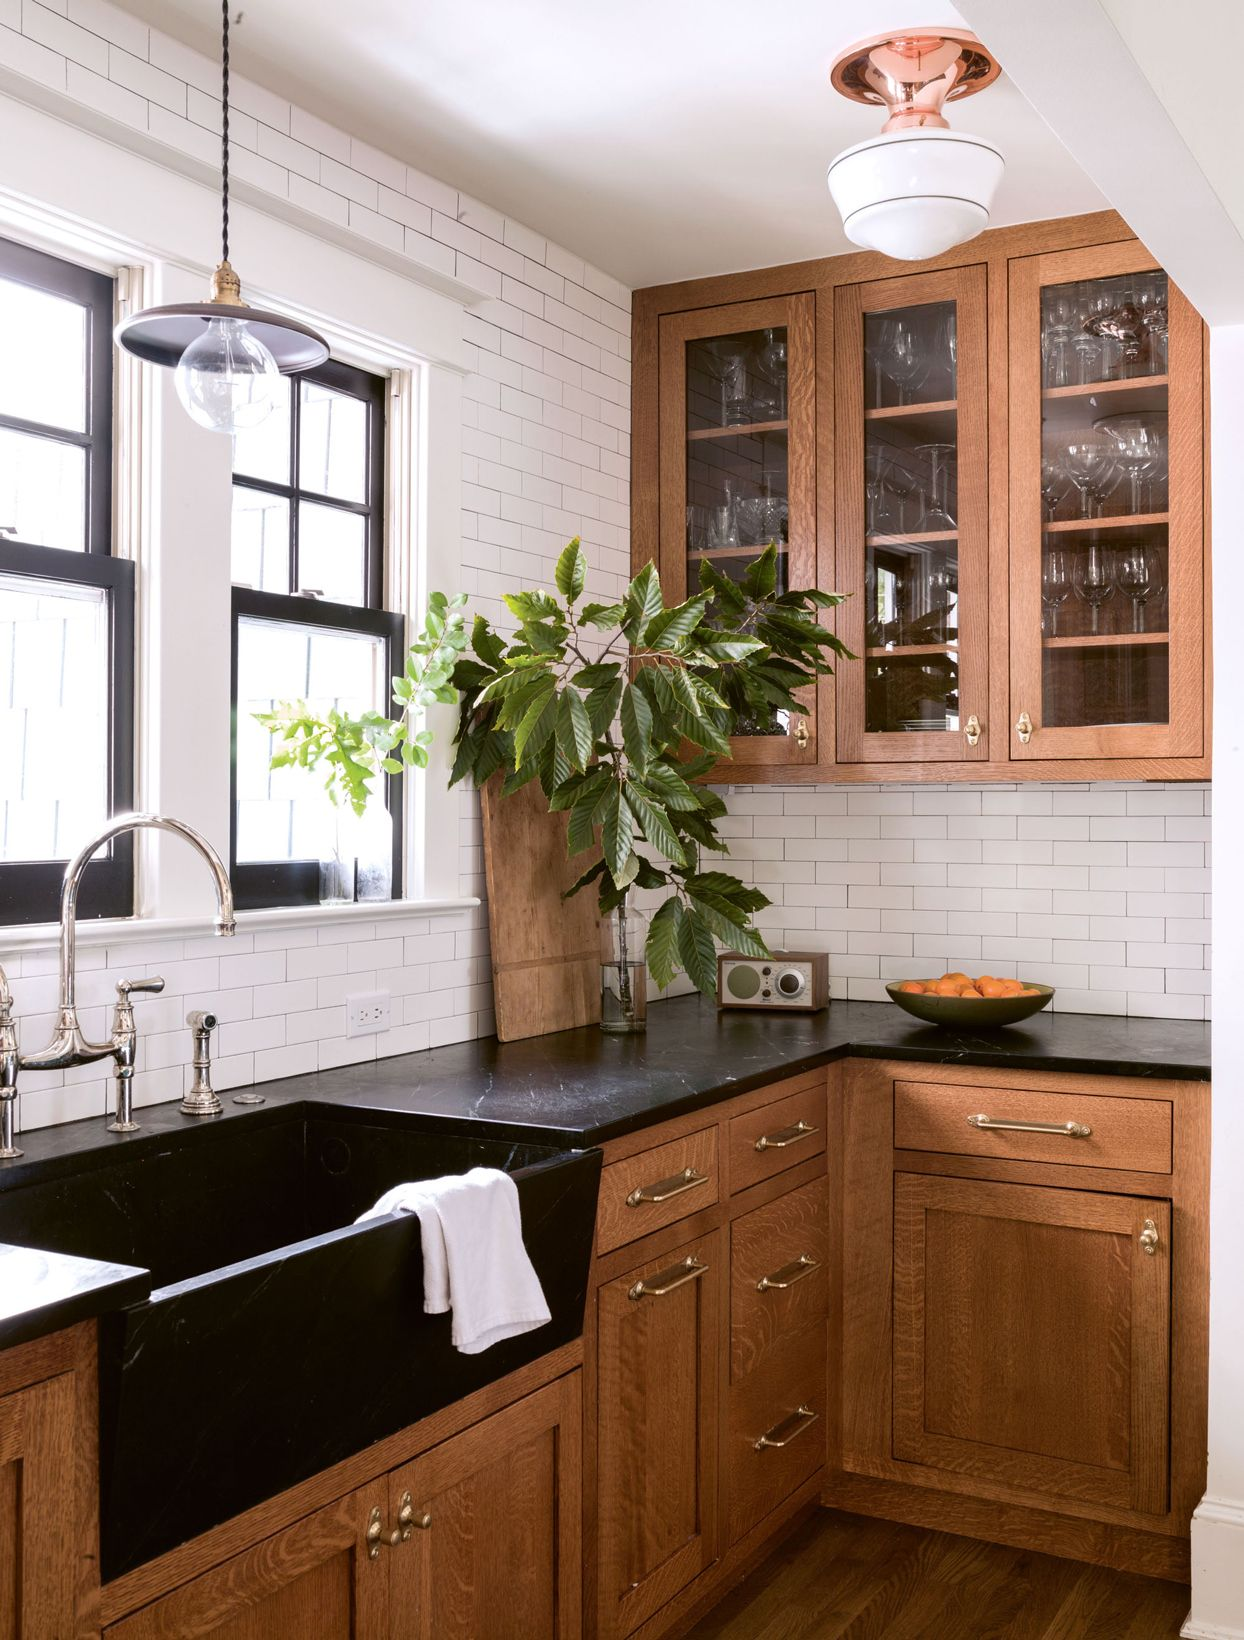 Designer Lauren Liess Turned An Arts And Crafts Charmer In Washington D C Into The Ultimate Family Home Kitchen Design Kitchen Remodel Kitchen Inspirations